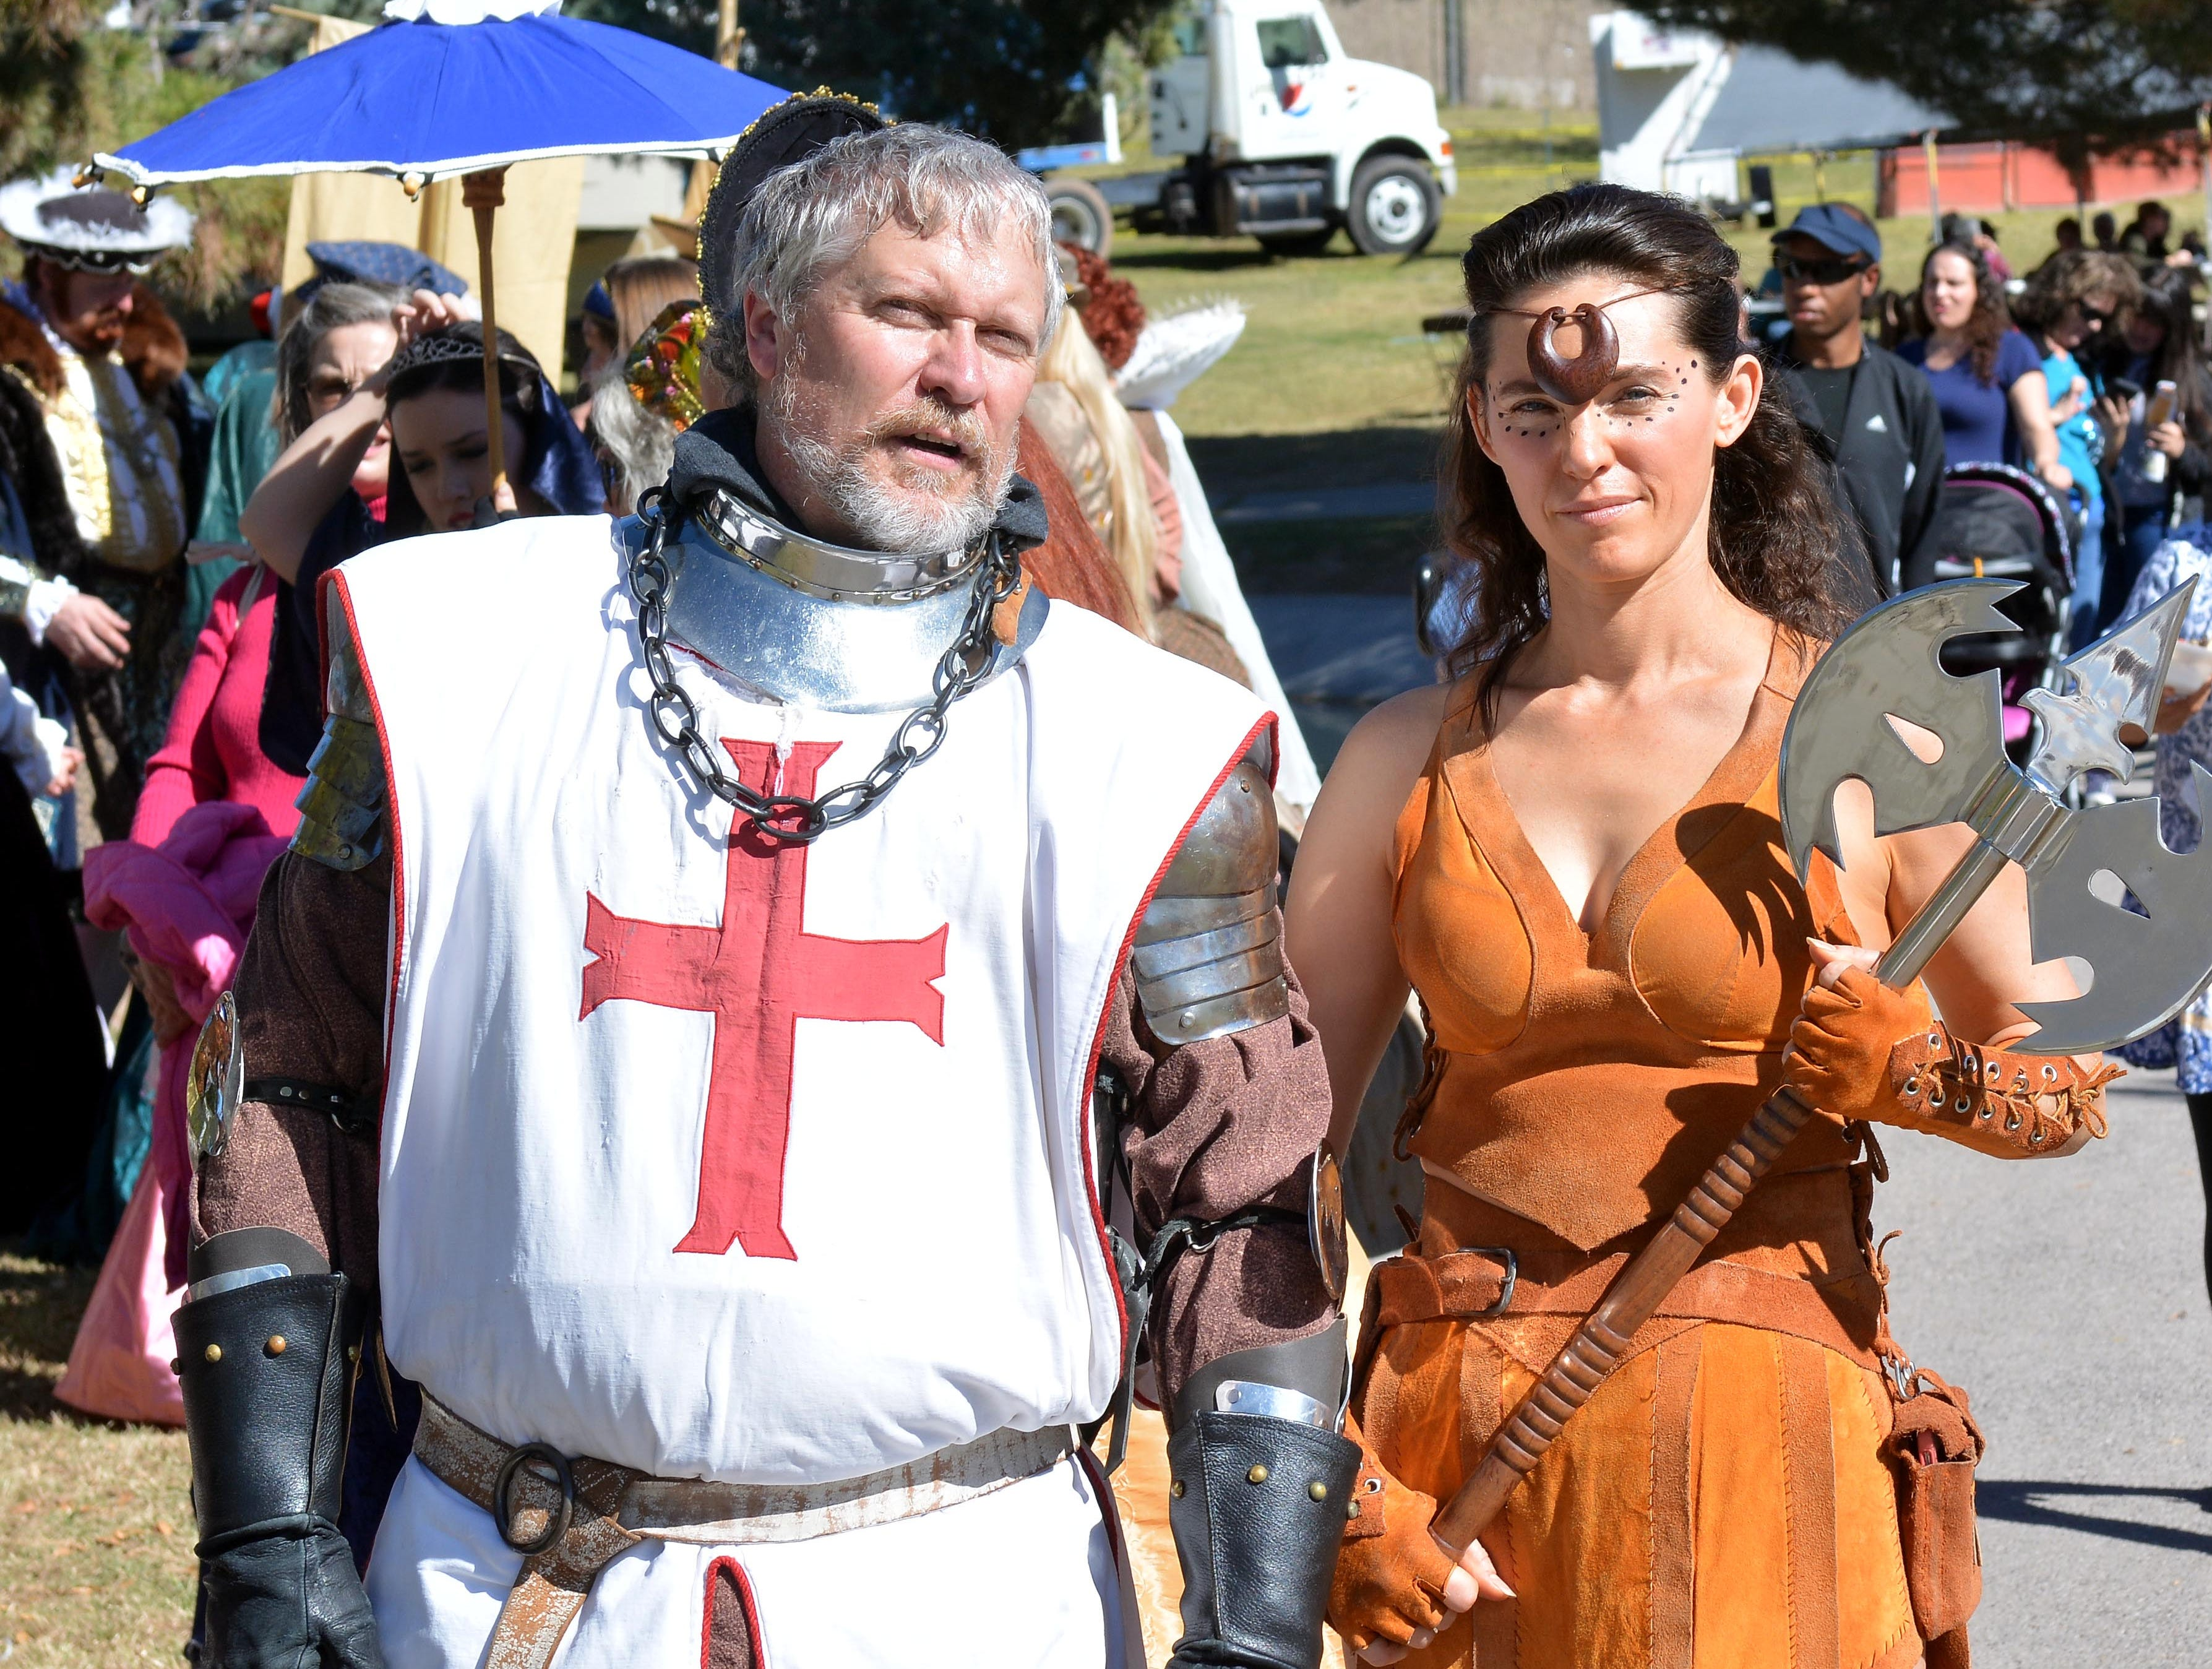 A knight and a female warriot stroll through Young Park on Saturday during the Renaissance Faire. Photo taken 11/3/18.